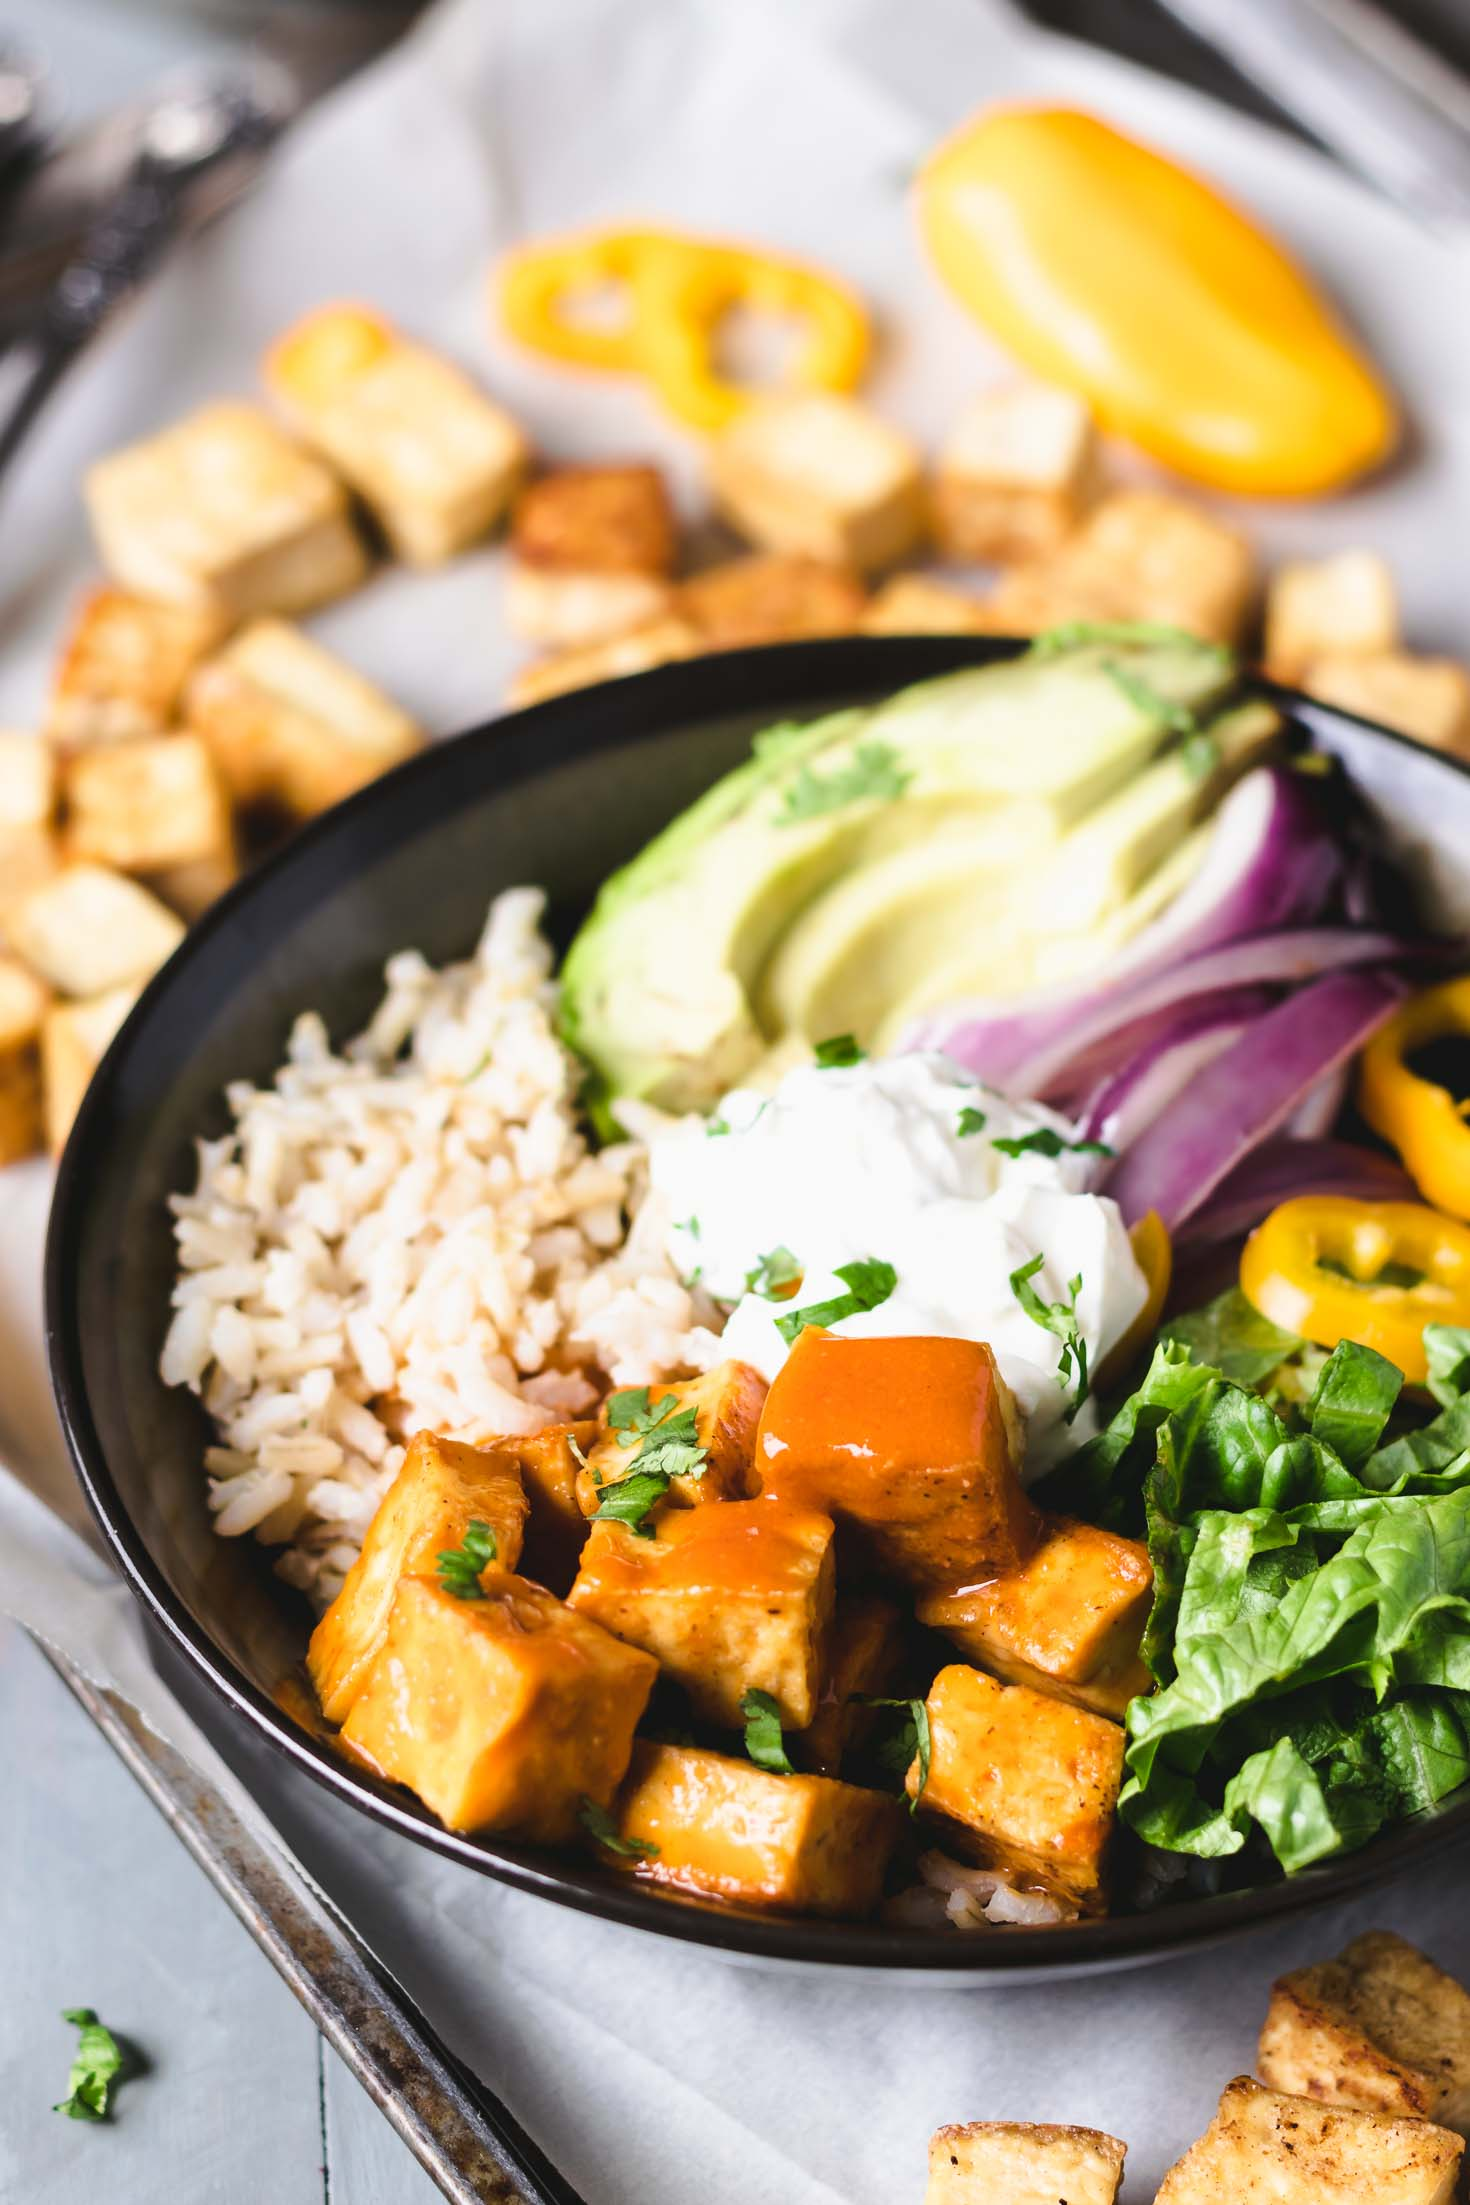 vegan buffalo tofu burrito bowl-top-side view-buffalo tofu-brown rice-leaf lettuce-sauteed red onion-yellow pepper-vegan sour cream garnished with chopped cilantro in a round bowl